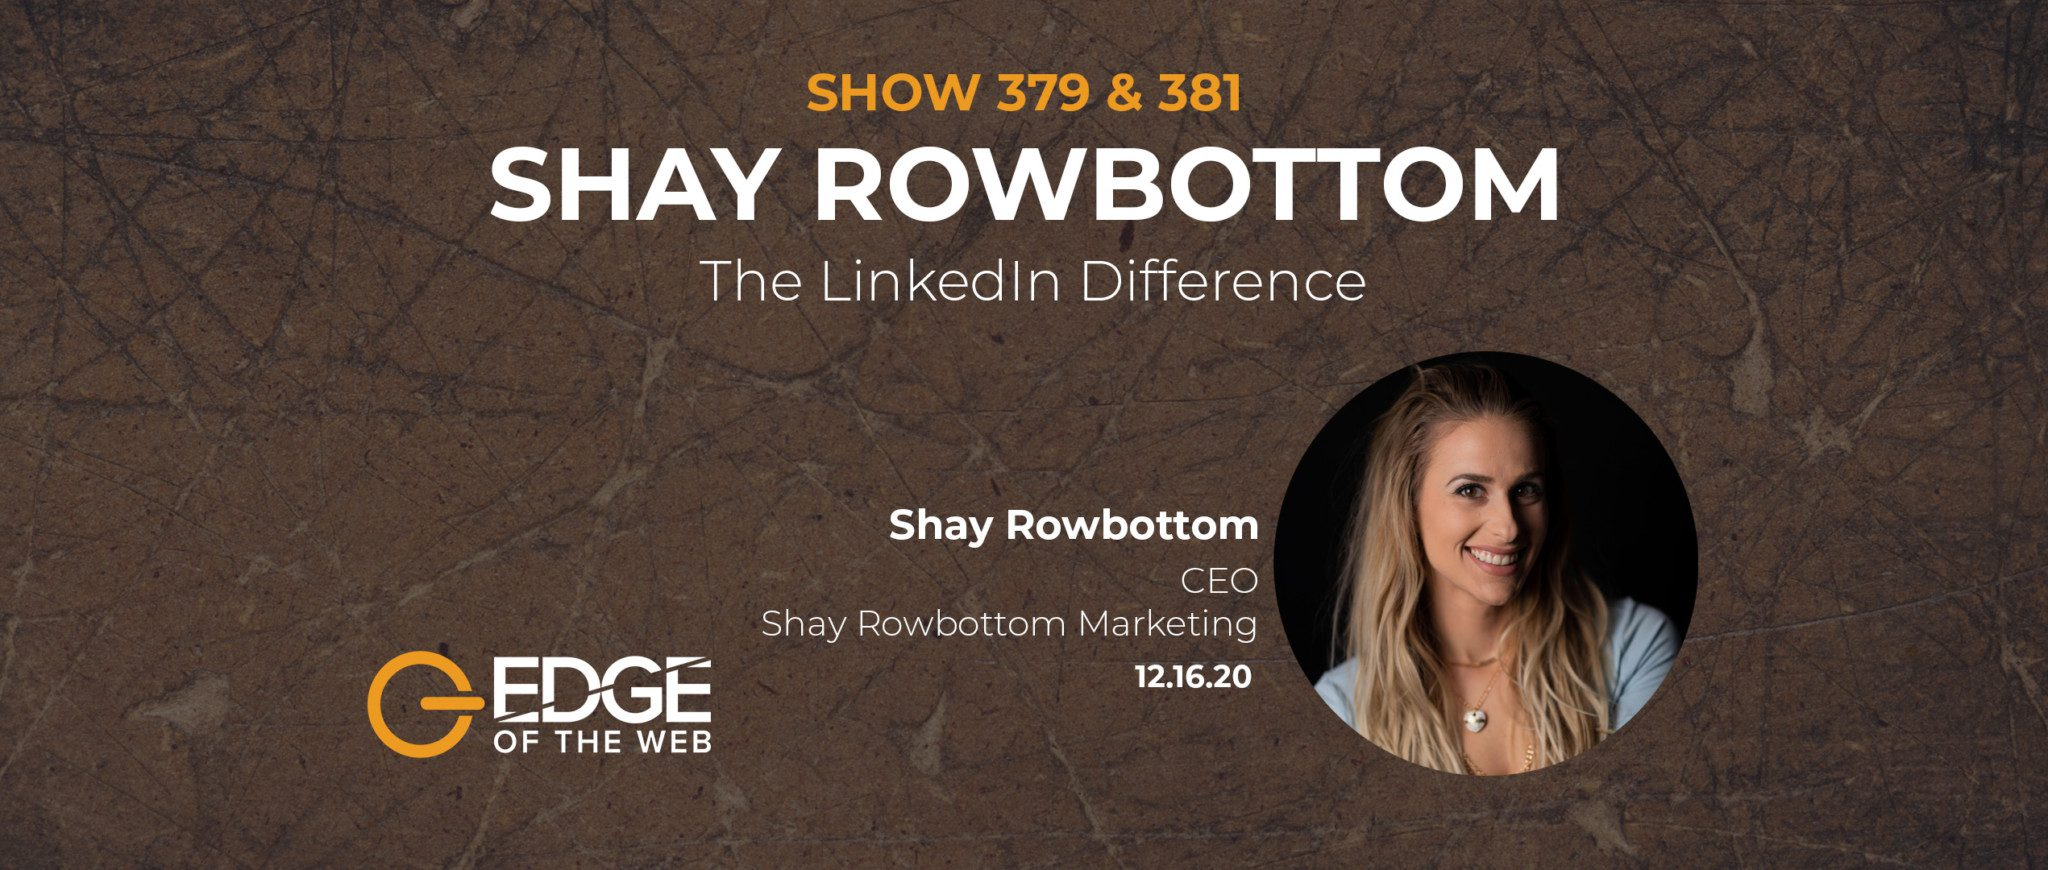 379 & 381 | The LinkedIn Difference with Shay Rowbottom